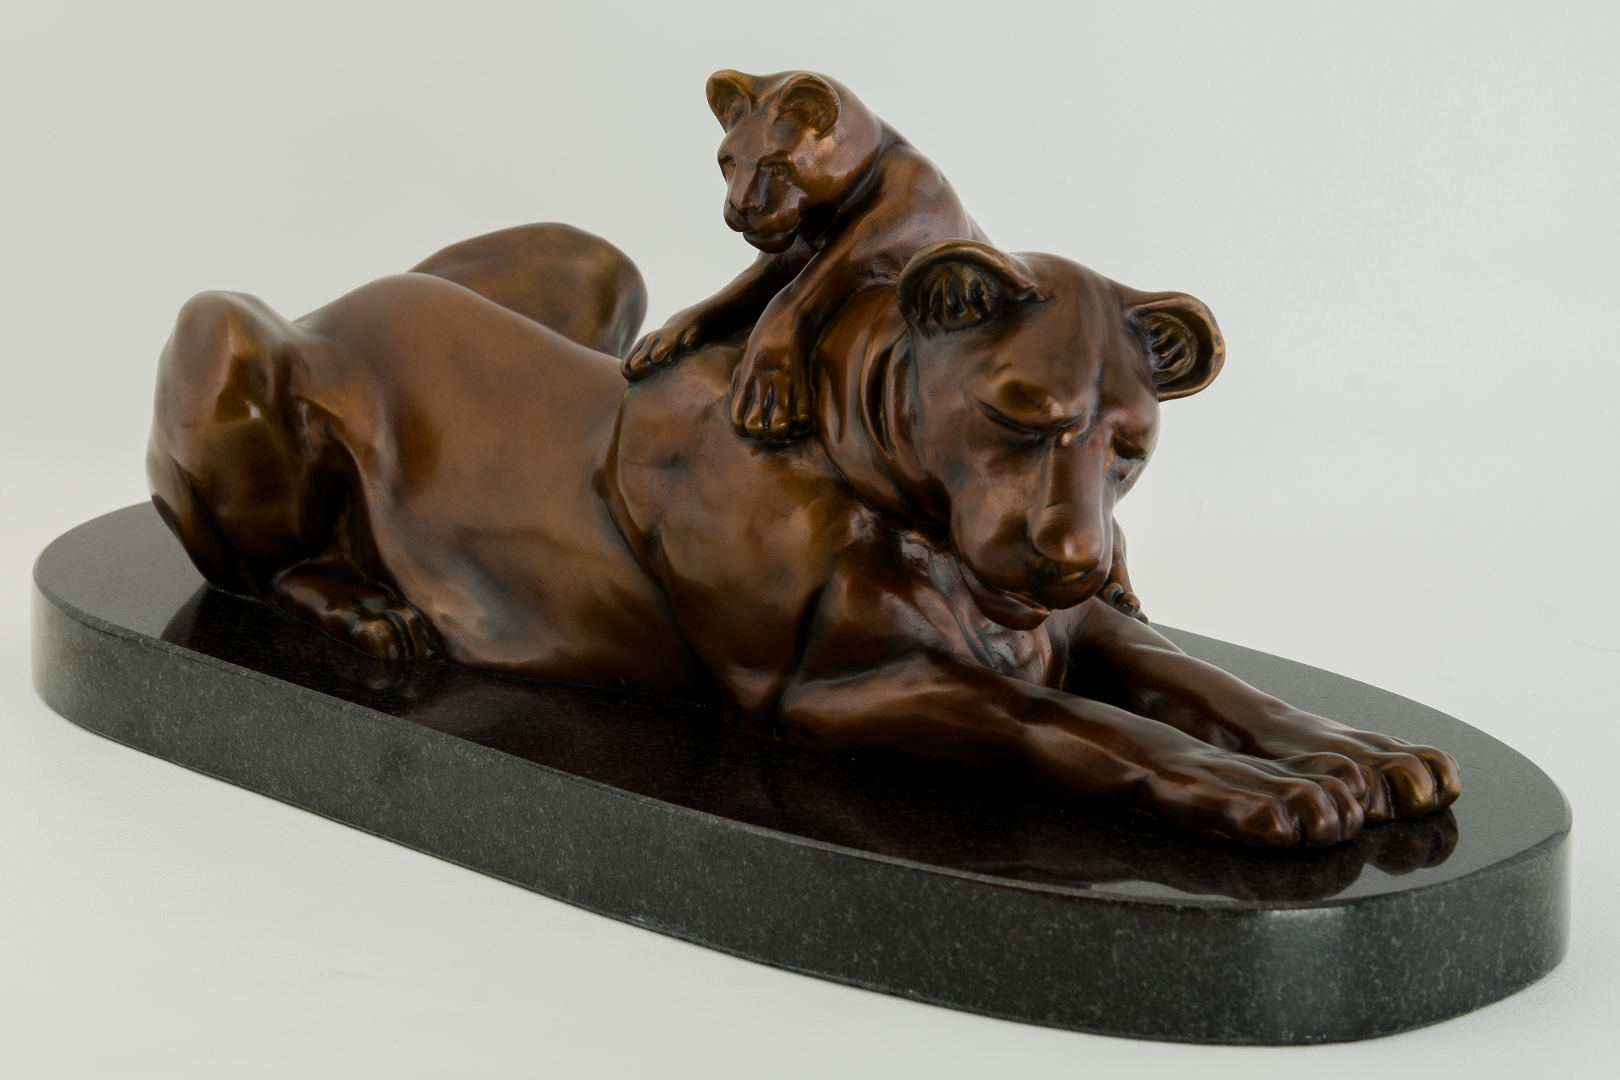 Lioness_and_Cub_bronze_sculpture_by_Terrence_Robertson-Fall-7.jpg